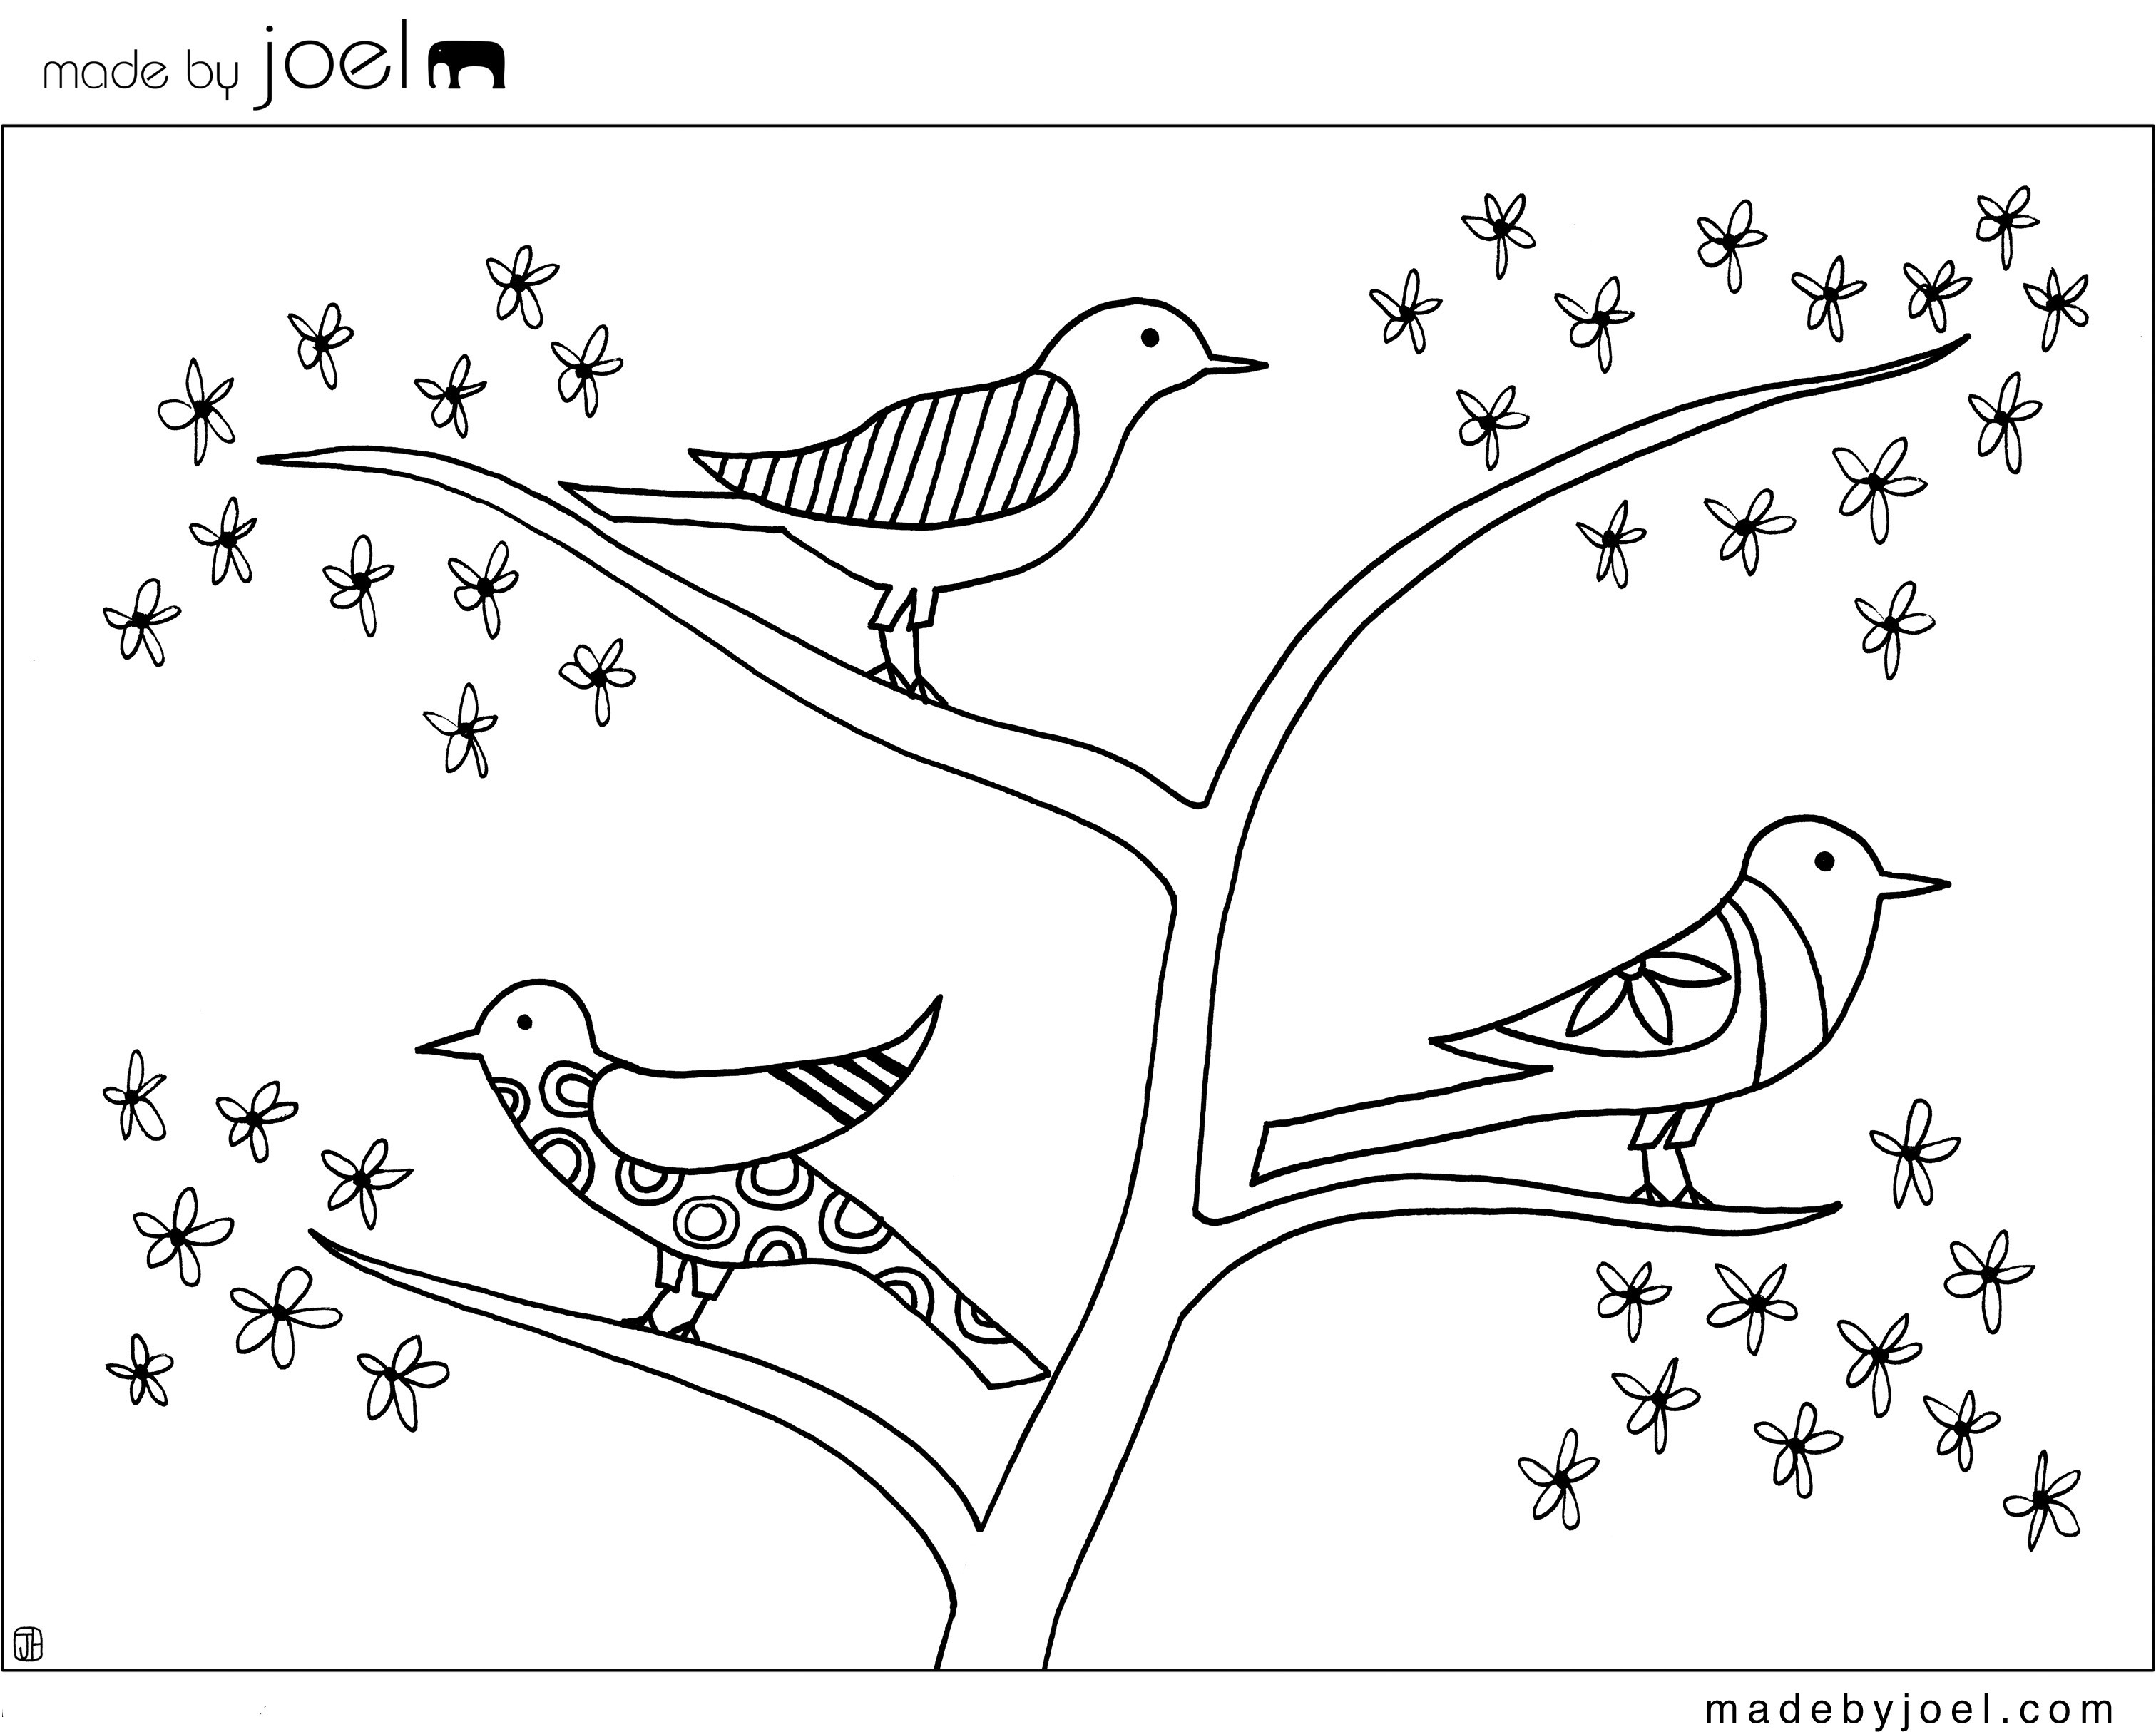 Free Coloring Sheets Of Birds  Made by Joel Giveaway Winners and New Coloring Sheet